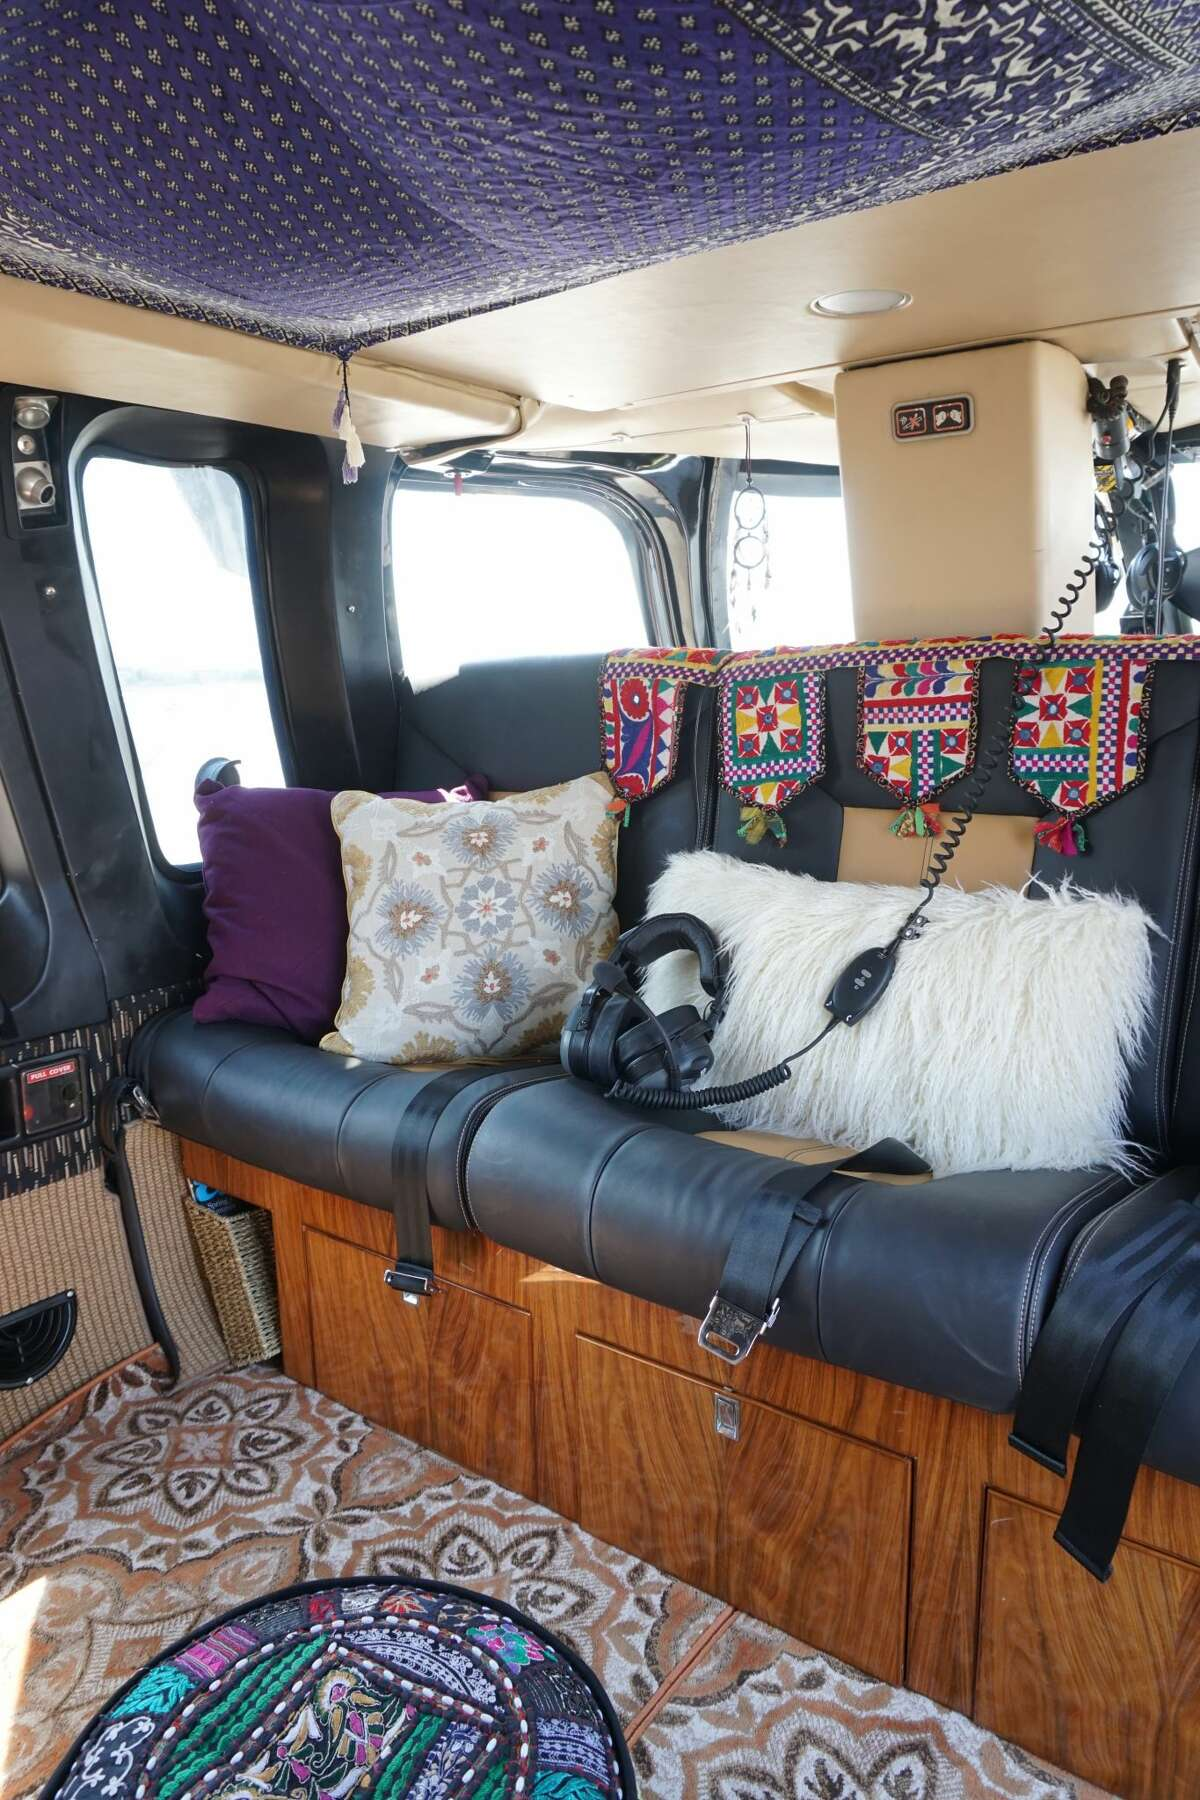 Inside the helicopter, the company has decorated the interior to give it a Burning Man vibe, complete with fuzzy pillows and rugs.